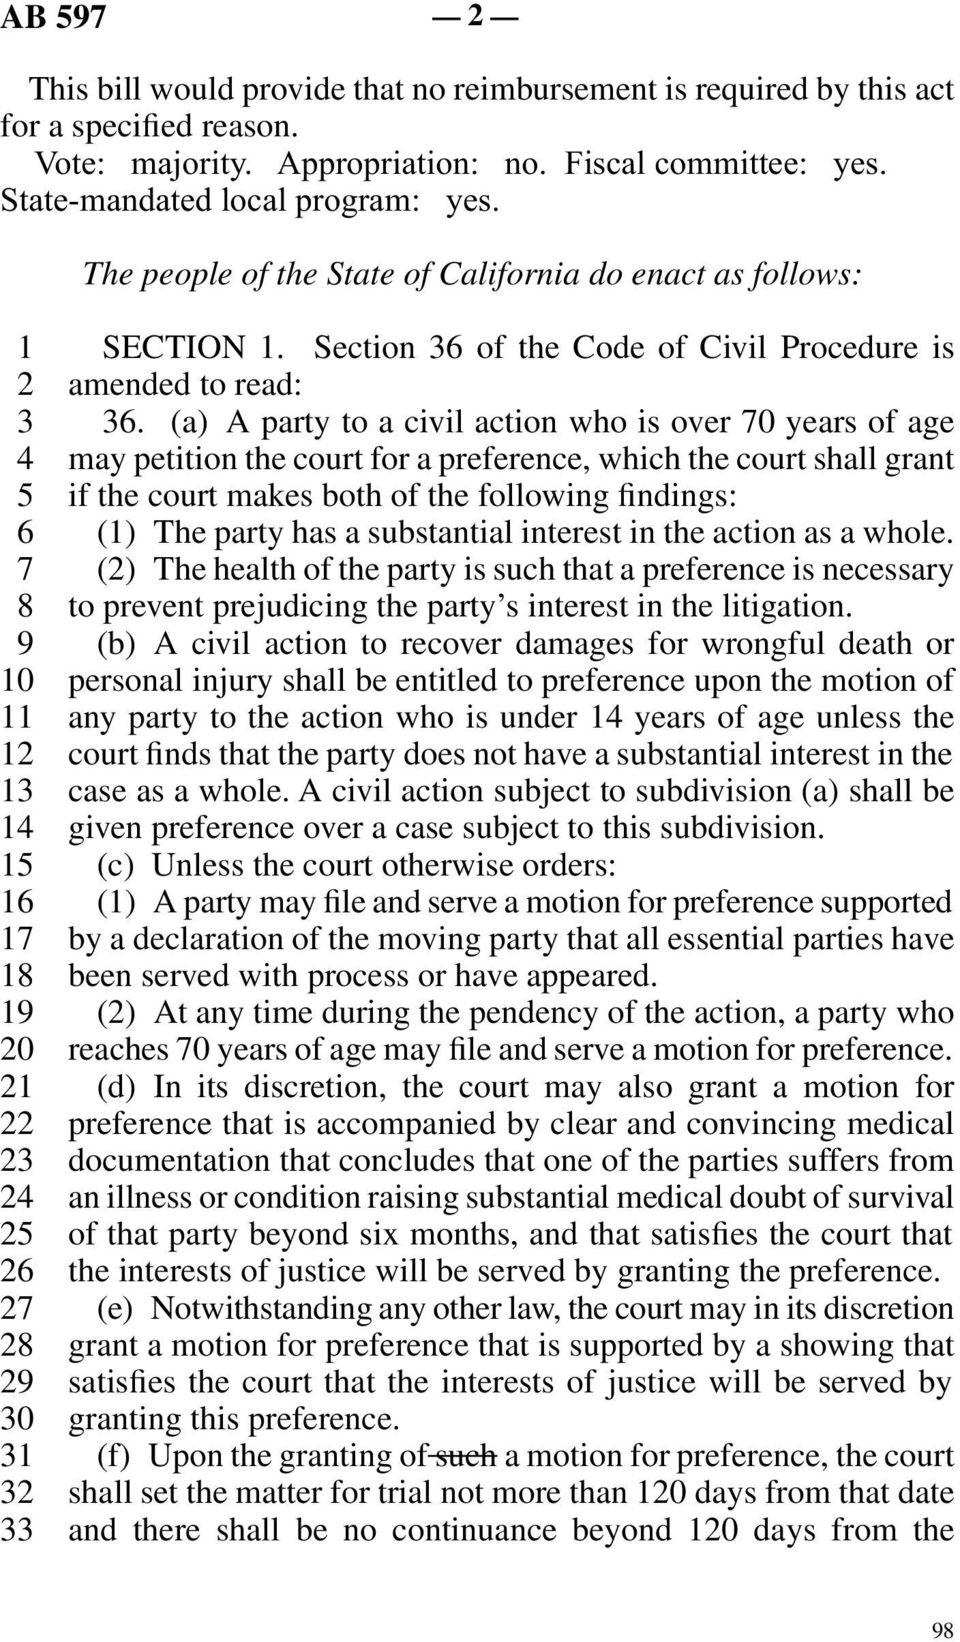 (a) A party to a civil action who is over 70 years of age line 4 may petition the court for a preference, which the court shall grant line 5 if the court makes both of the following findings: line 6